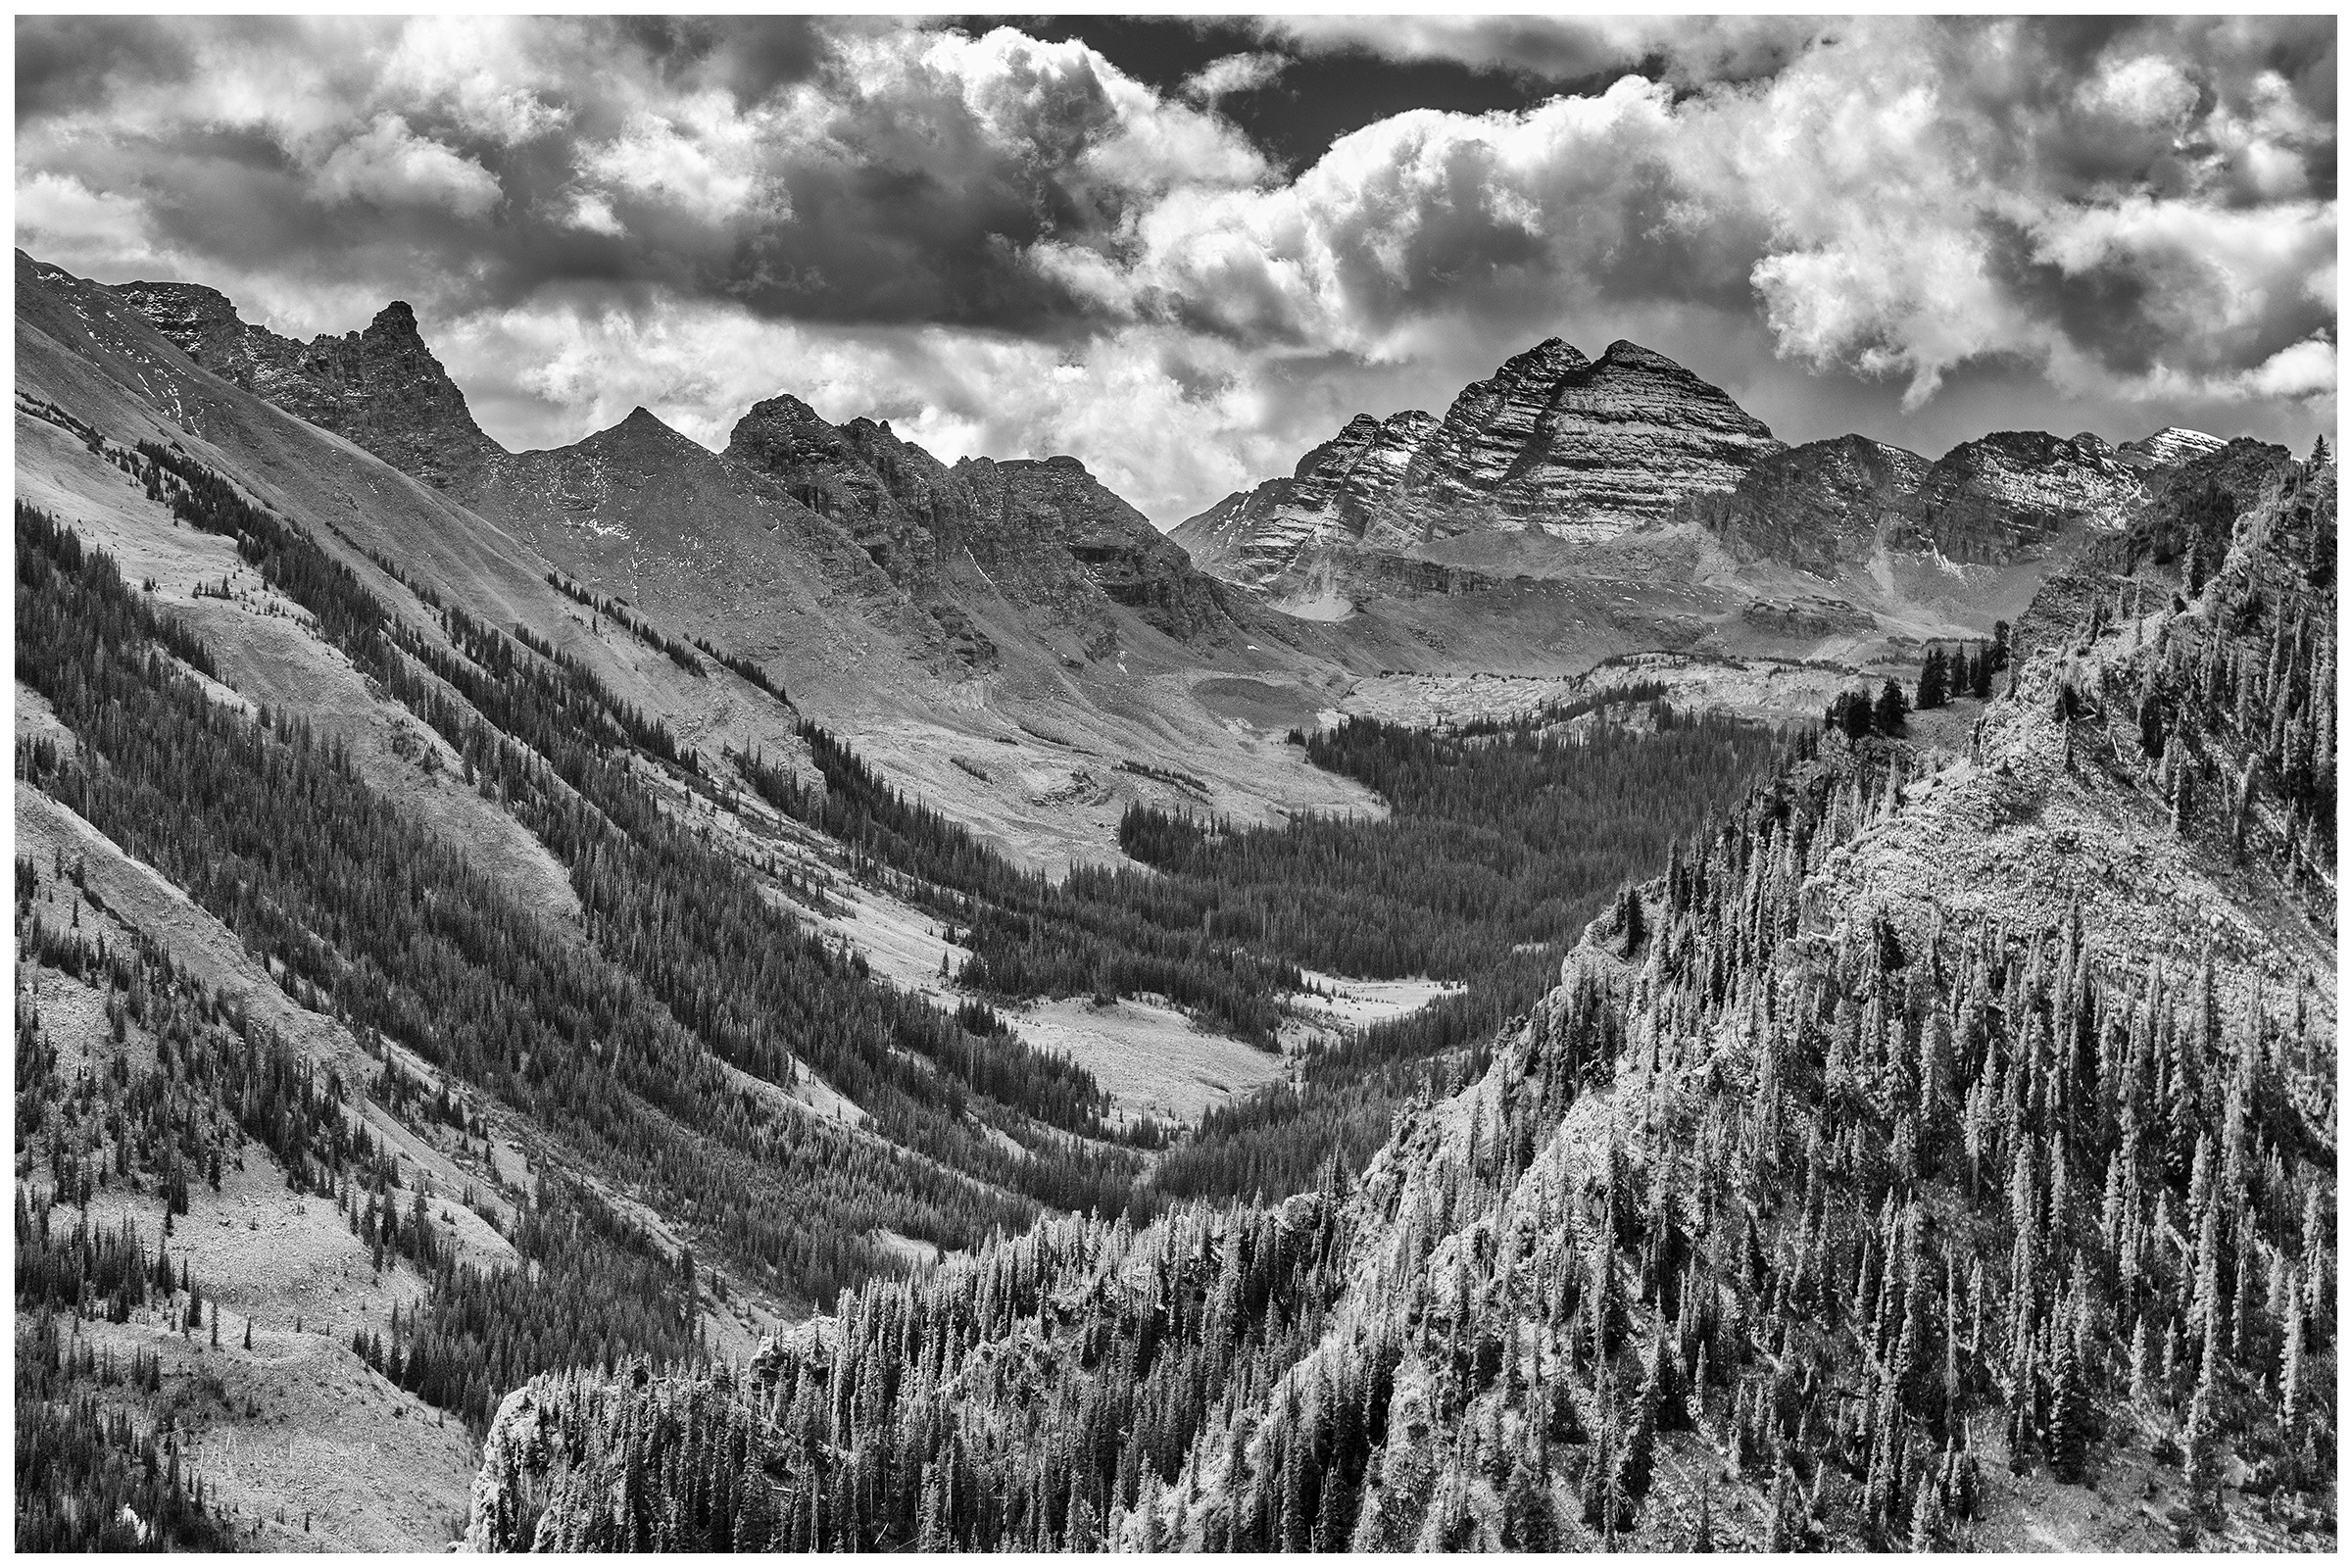 The Maroon Bells in Black & White